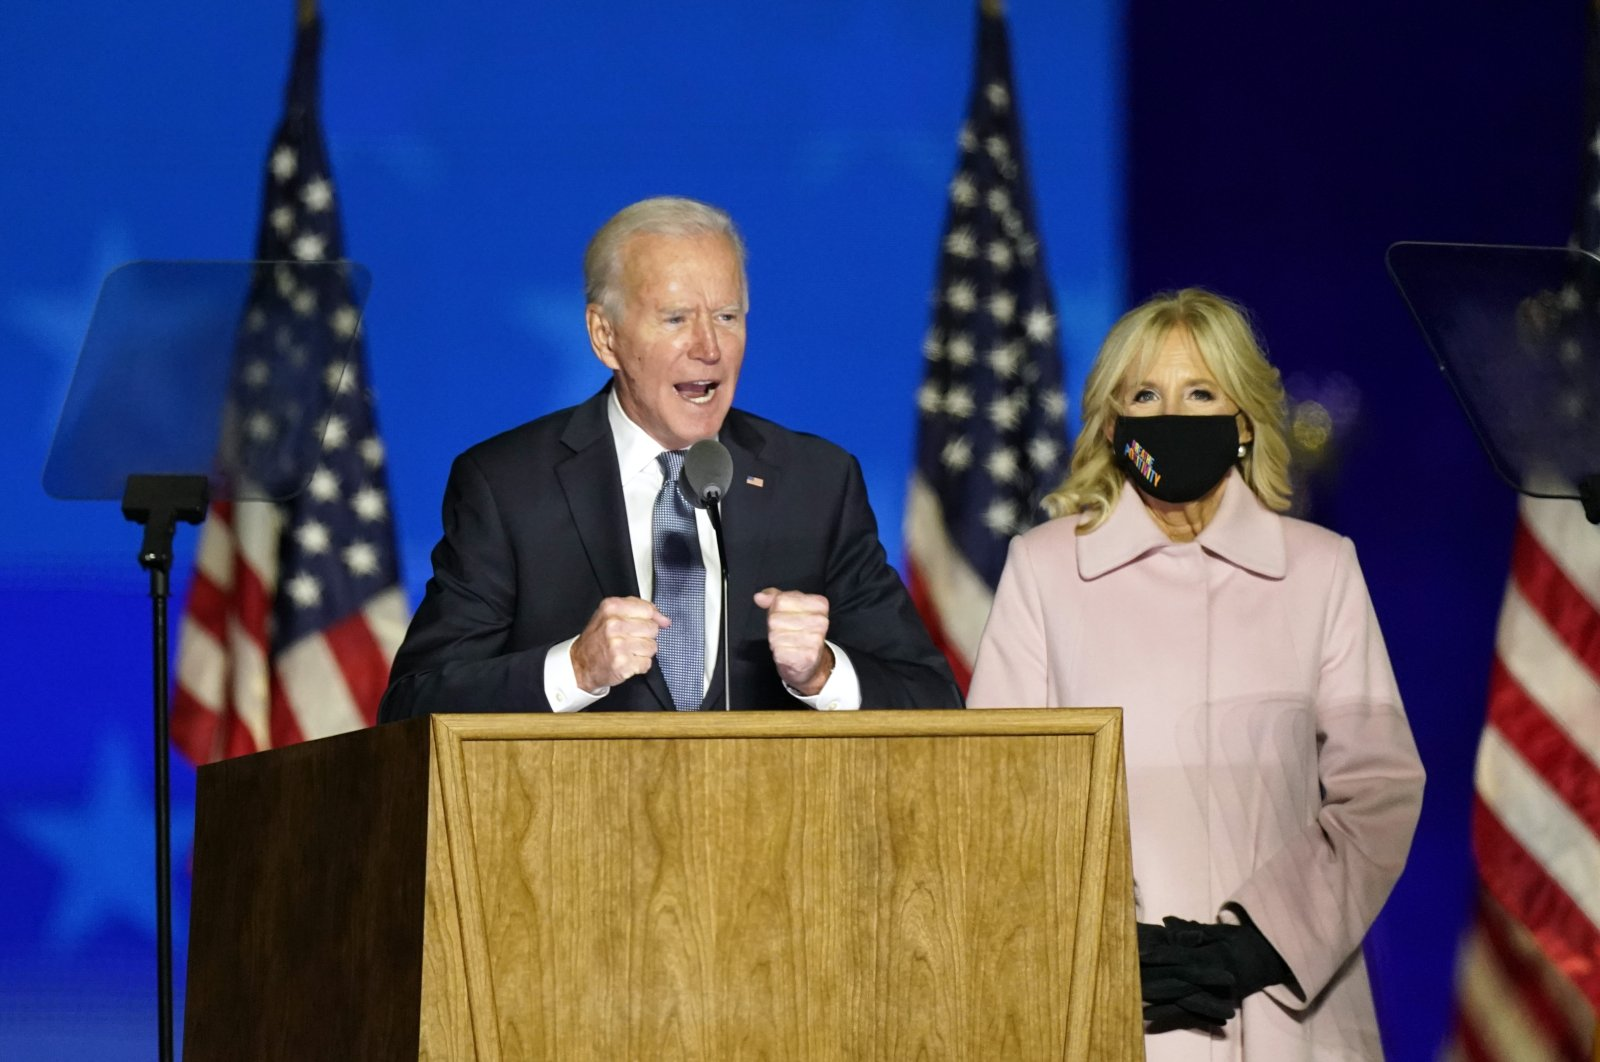 Democratic presidential candidate former Vice President Joe Biden speaks to supporters Wednesday, Nov. 4, 2020, in Wilmington, Del., as he stands next to his wife Jill Biden. (AP Photo)